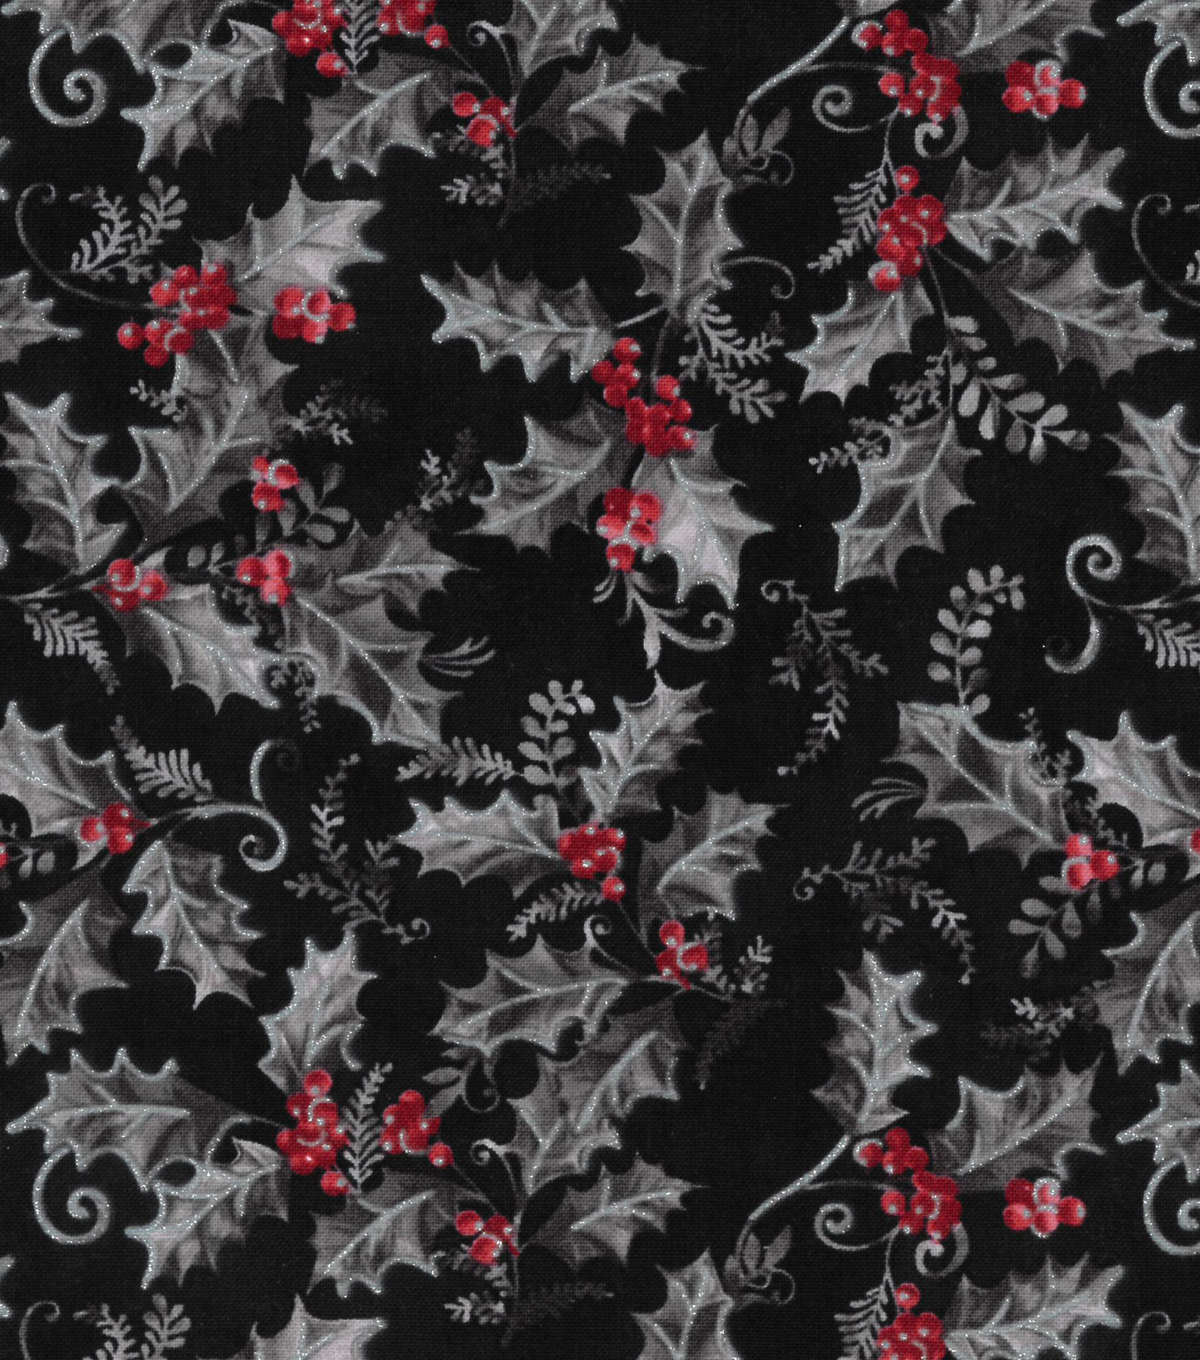 Christmas Cotton Fabric-Black Gray Red Holly Berry Glitter